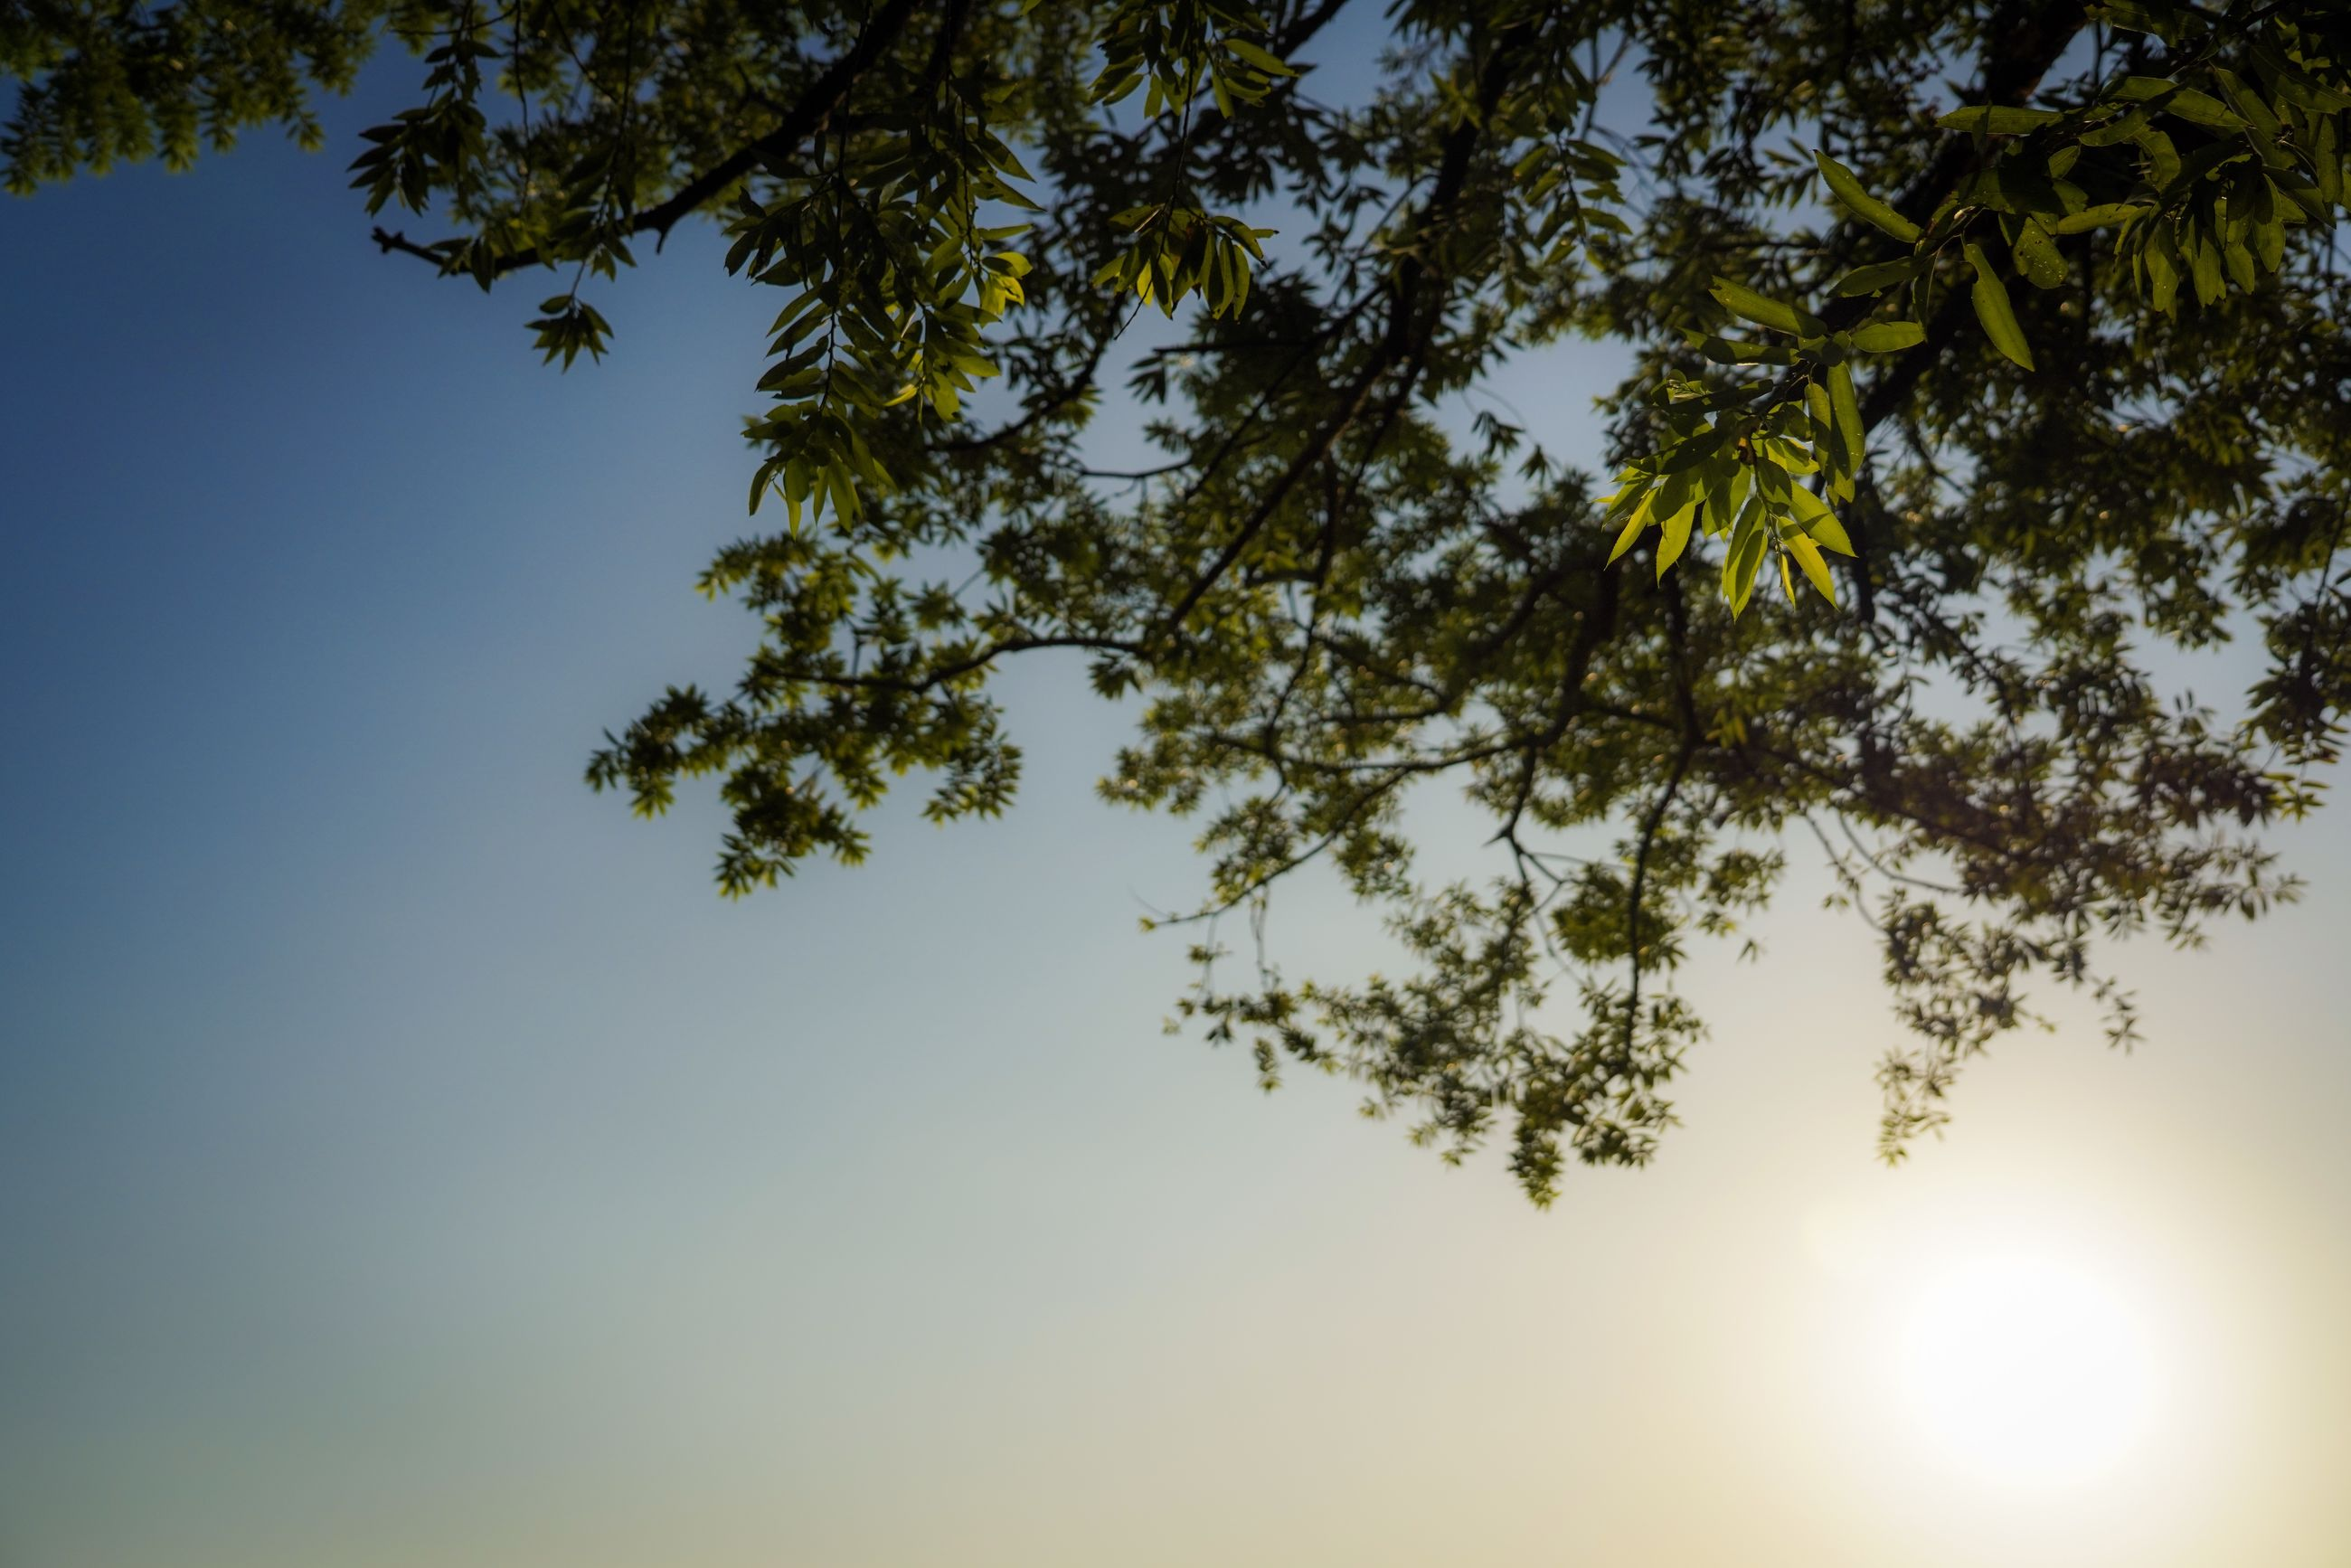 sky, tree, low angle view, plant, beauty in nature, tranquility, growth, nature, clear sky, branch, no people, sunlight, day, scenics - nature, tranquil scene, outdoors, sun, sunny, blue, leaf, high